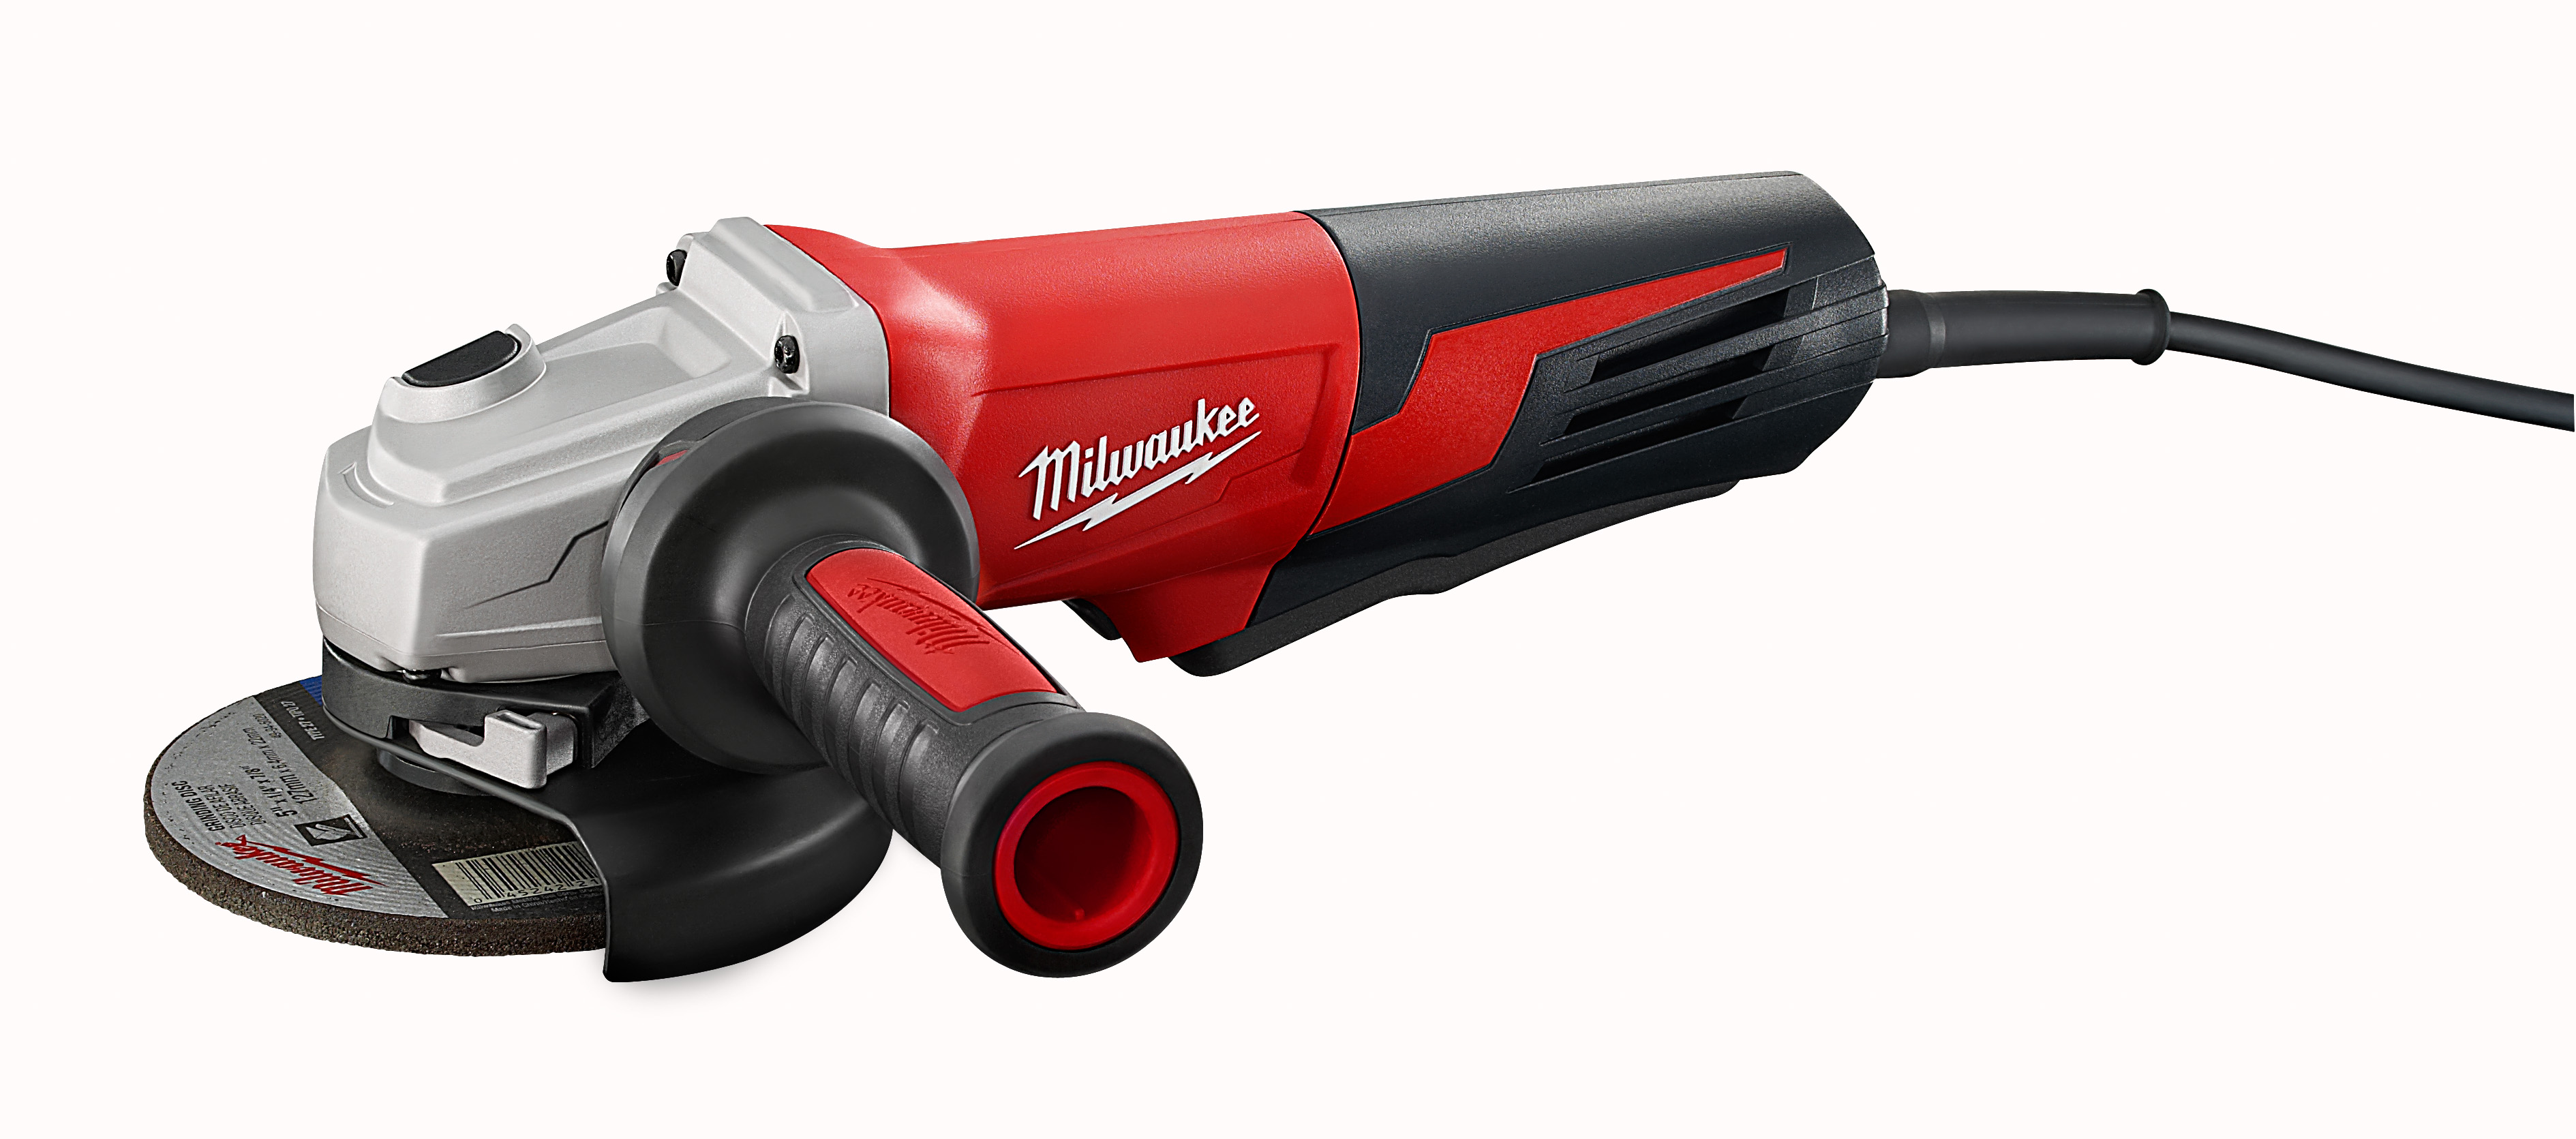 Milwaukee® 6117-31 Double Insulated Small Angle Grinder, 5 in Dia Wheel, 5/8-11 Arbor/Shank, 120 VAC, Black/Red